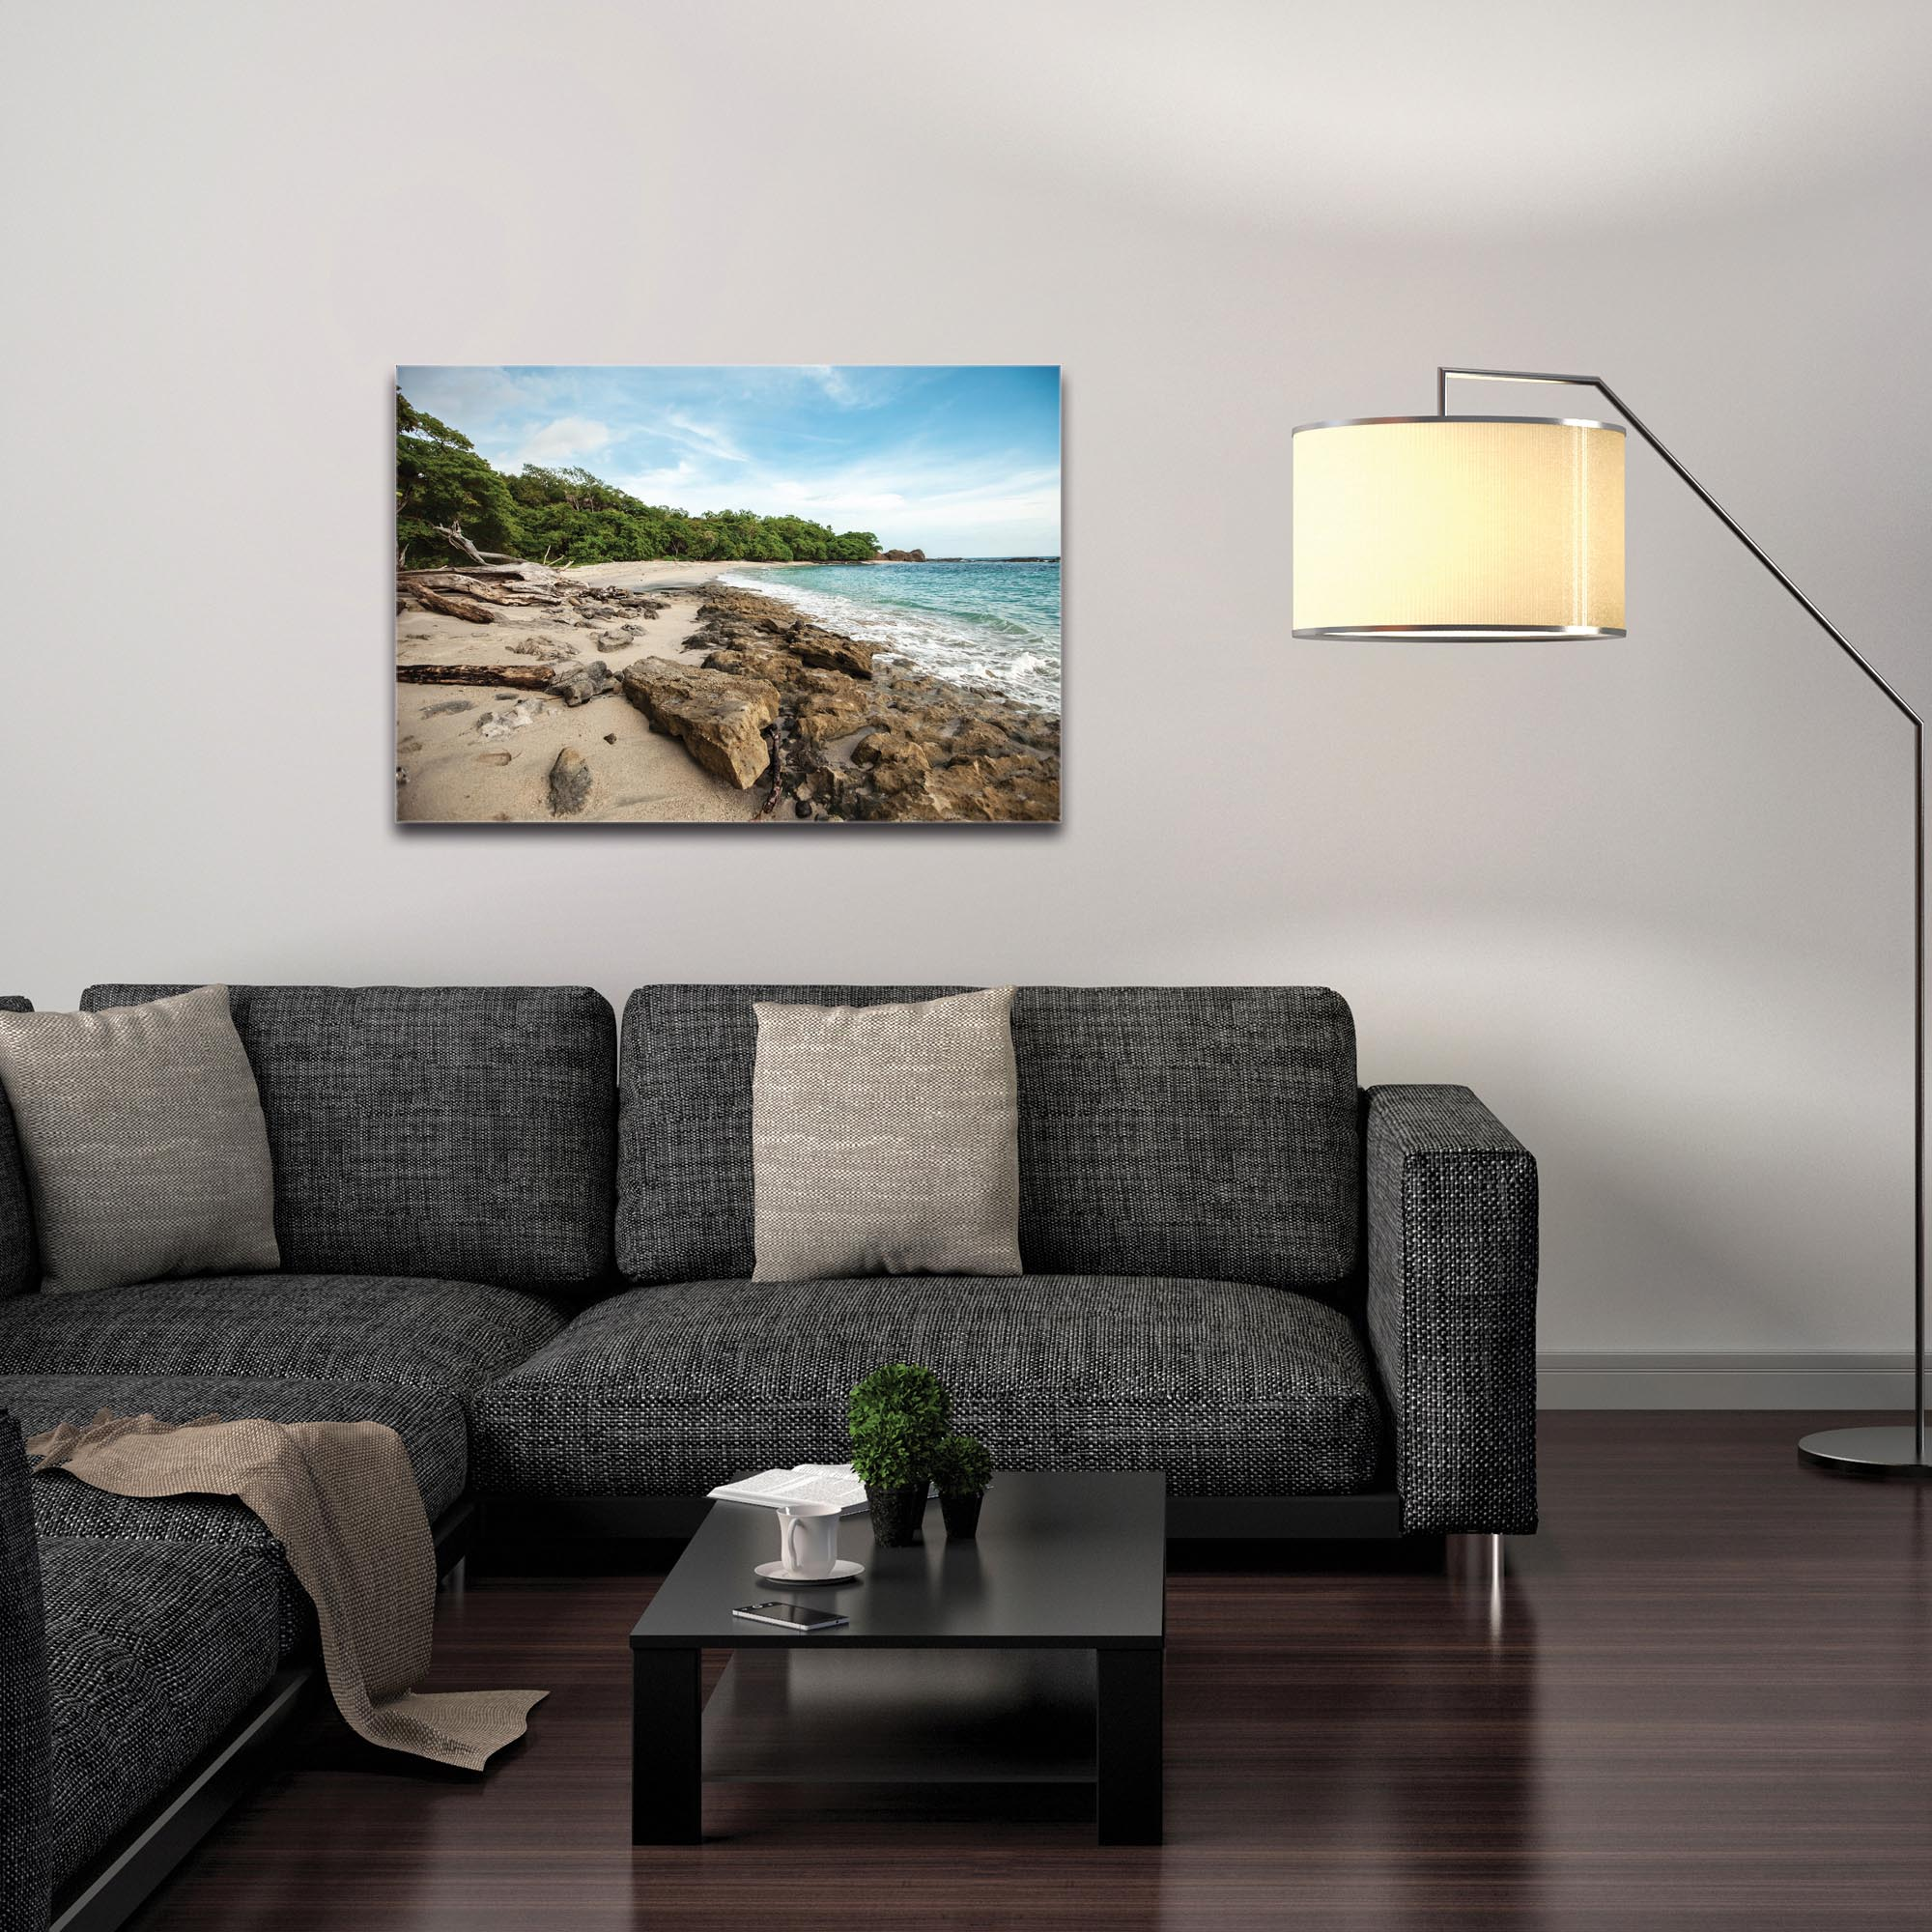 Coastal Wall Art 'Tropical Jungle' - Beach Decor on Metal or Plexiglass - Image 3